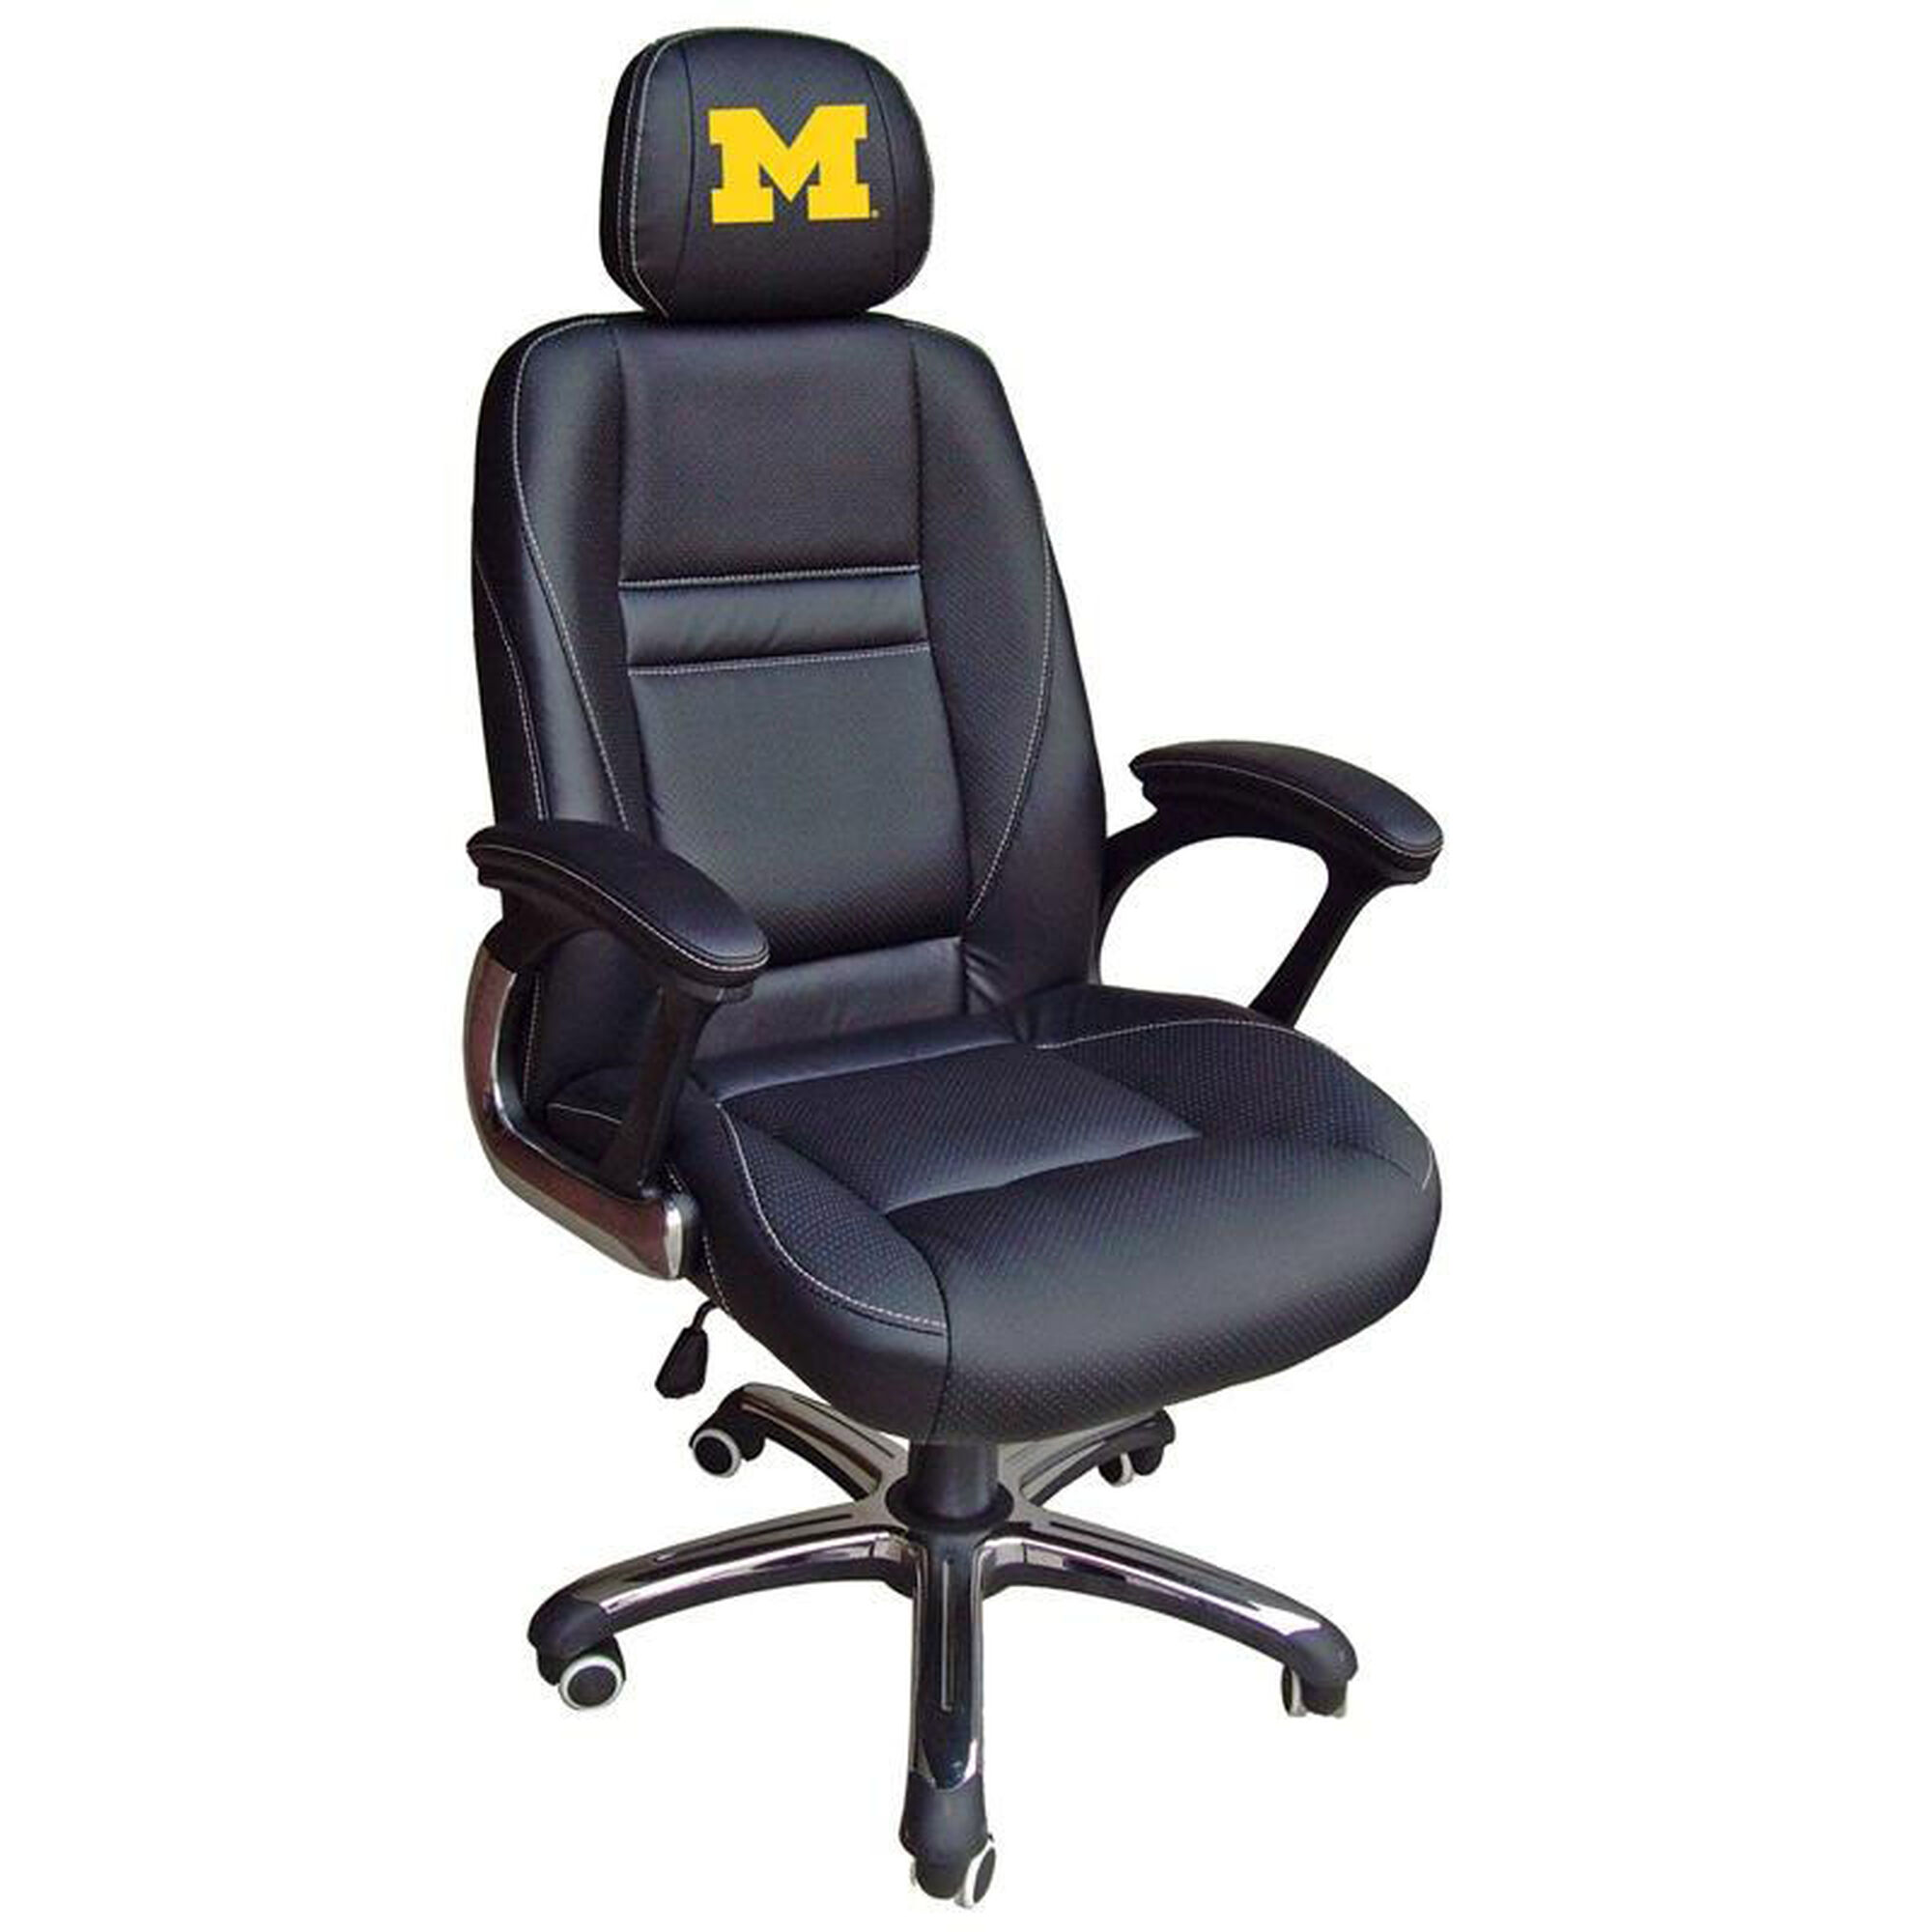 Sports Office Chair 901c Mich Bizchair Com